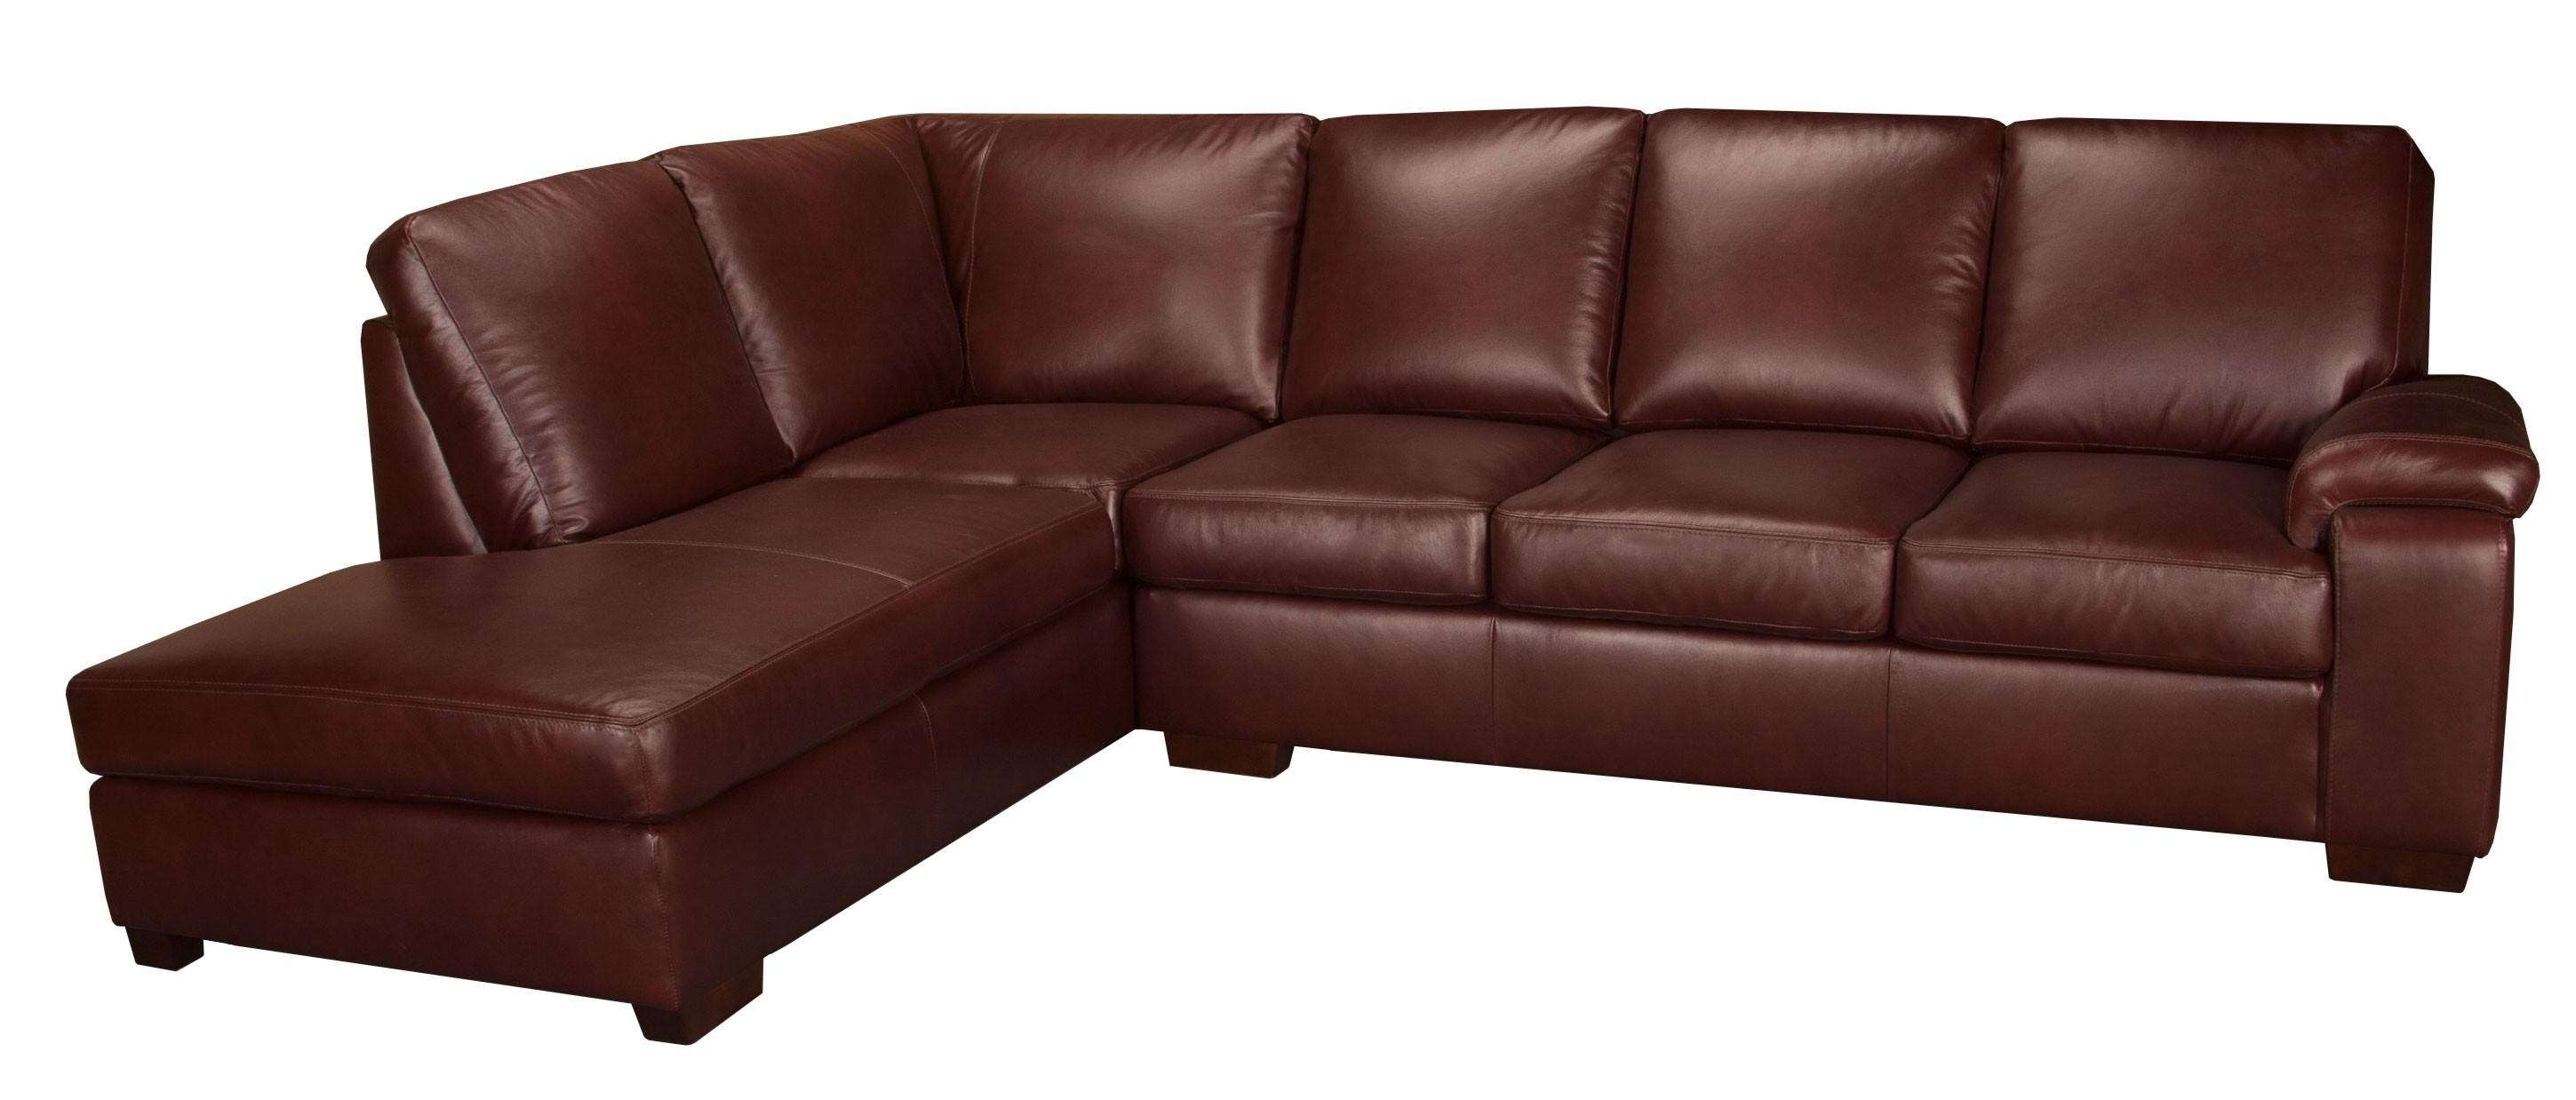 sectional sofa bed in toronto simple set designs india 20 43 choices of leather sofas ideas